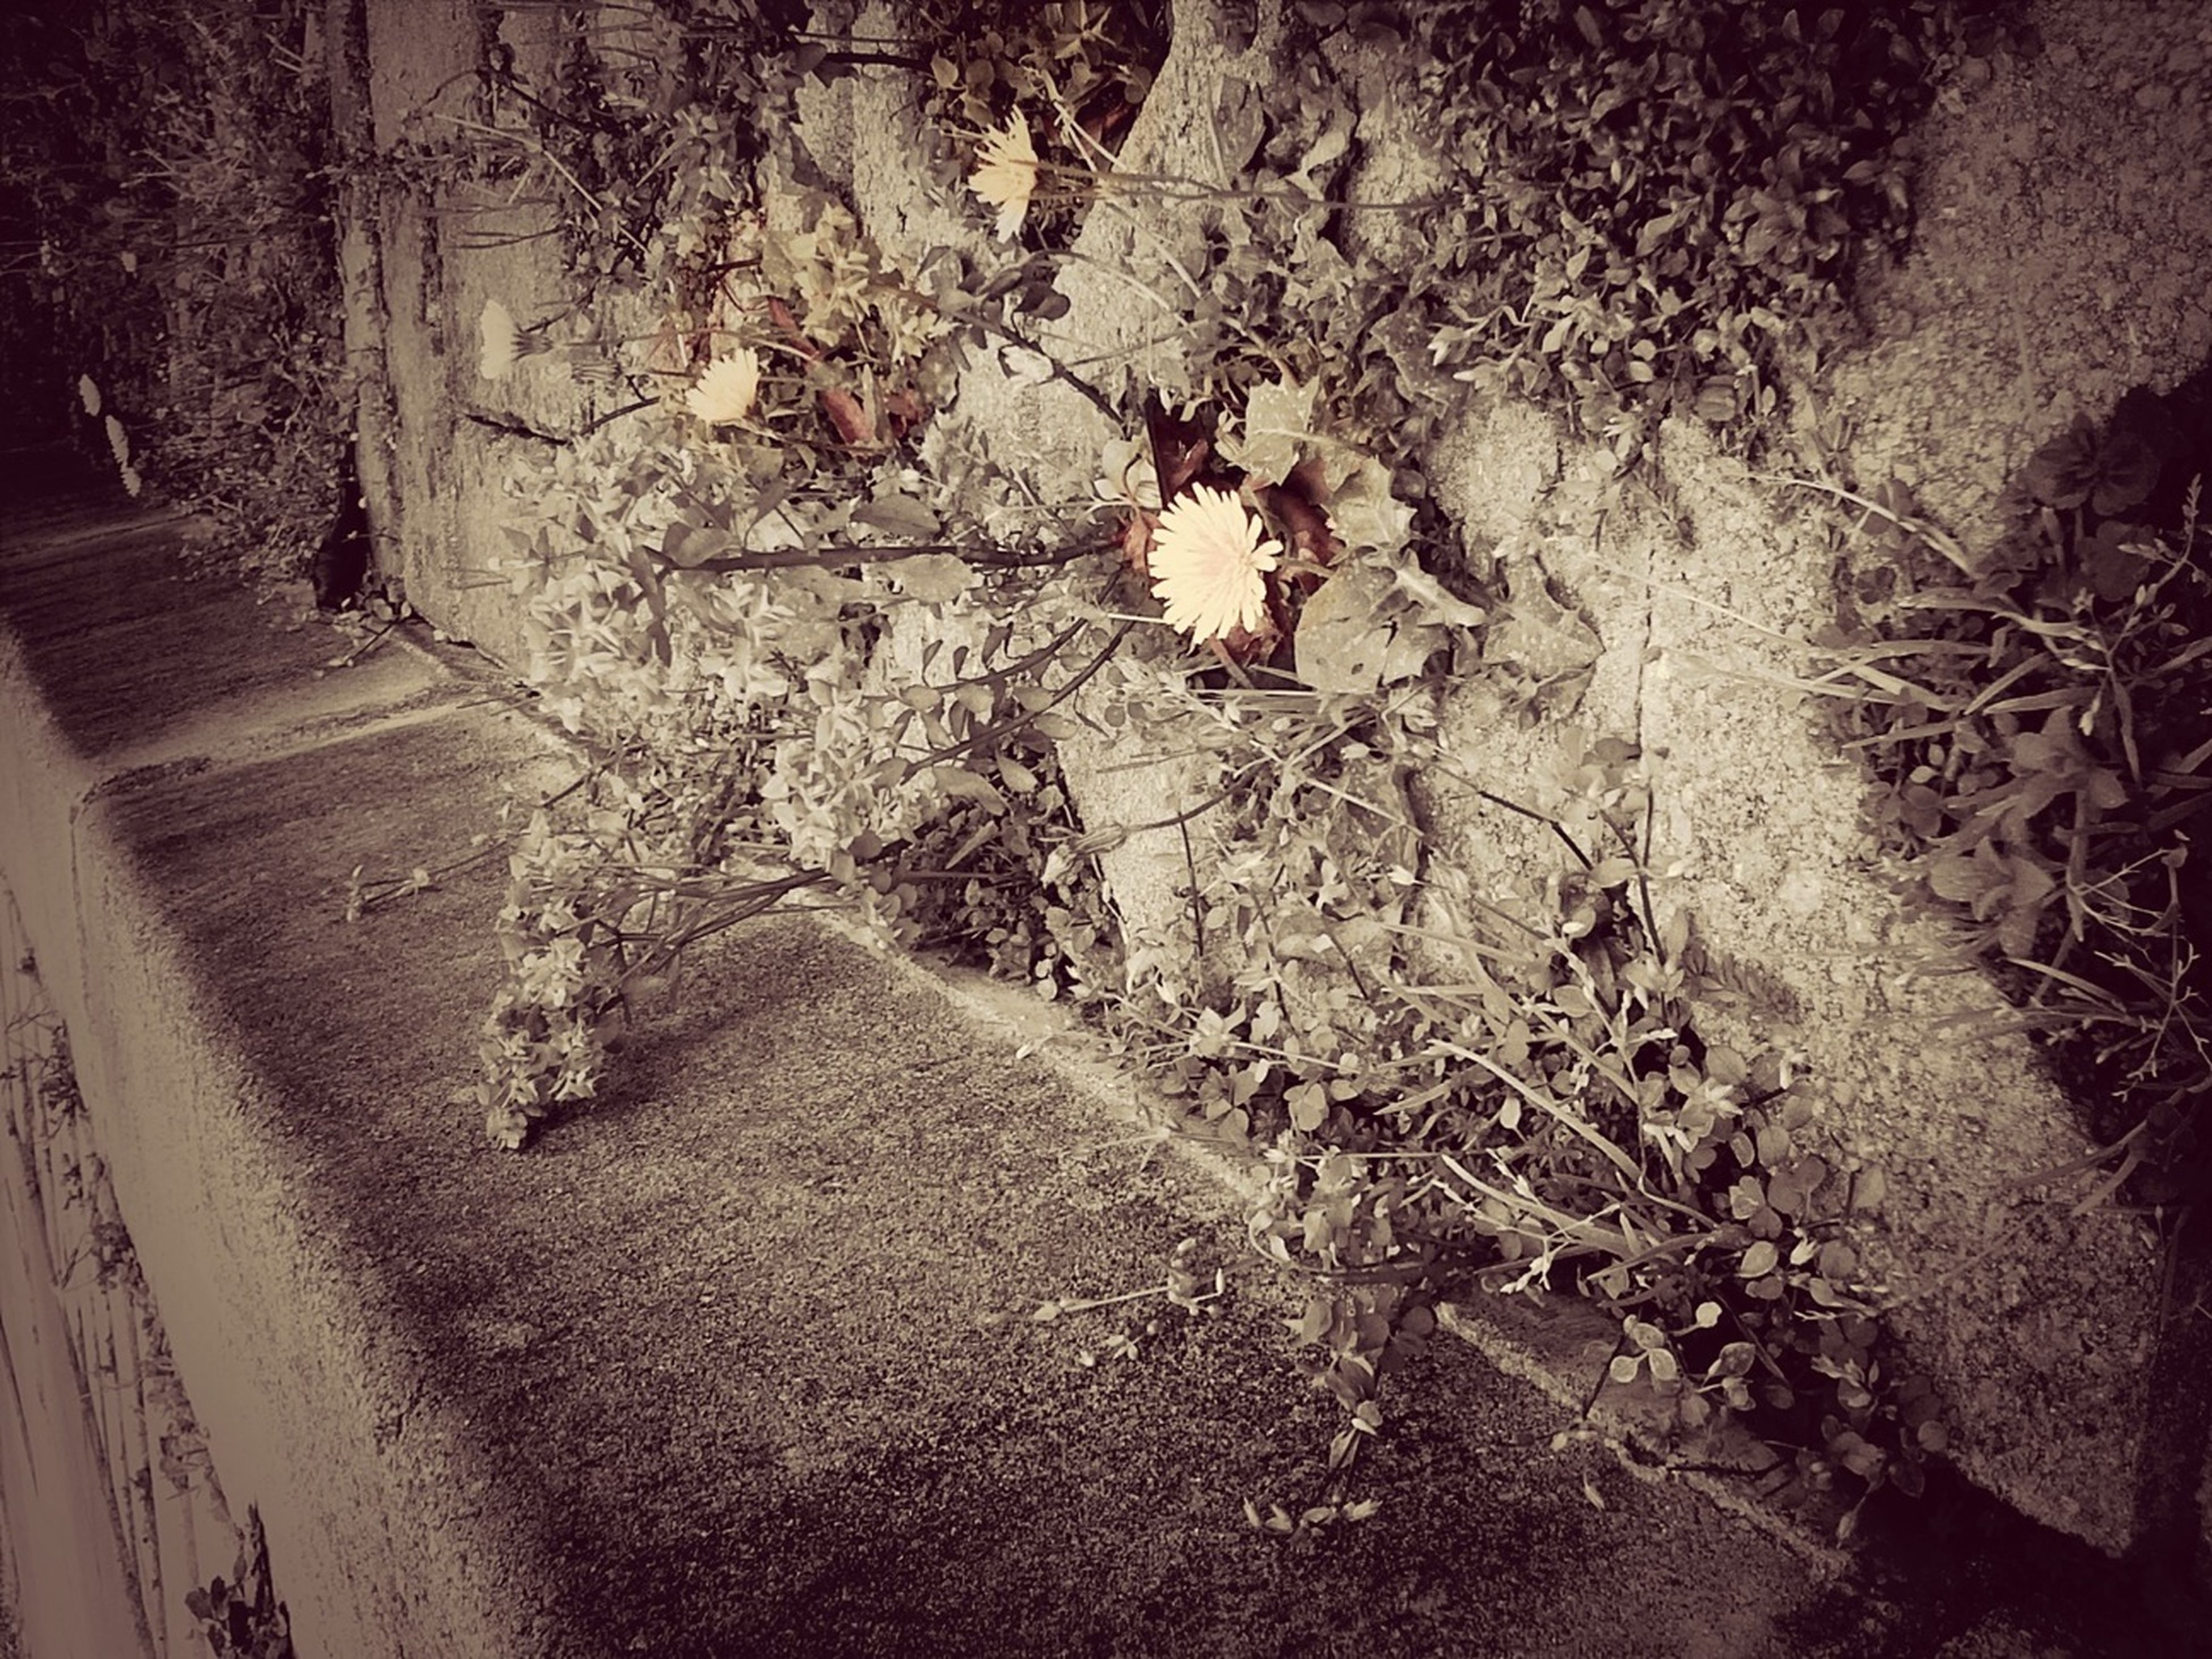 wall - building feature, built structure, architecture, high angle view, shadow, street, sunlight, wall, no people, outdoors, day, building exterior, plant, messy, nature, growth, textured, abandoned, footpath, tree